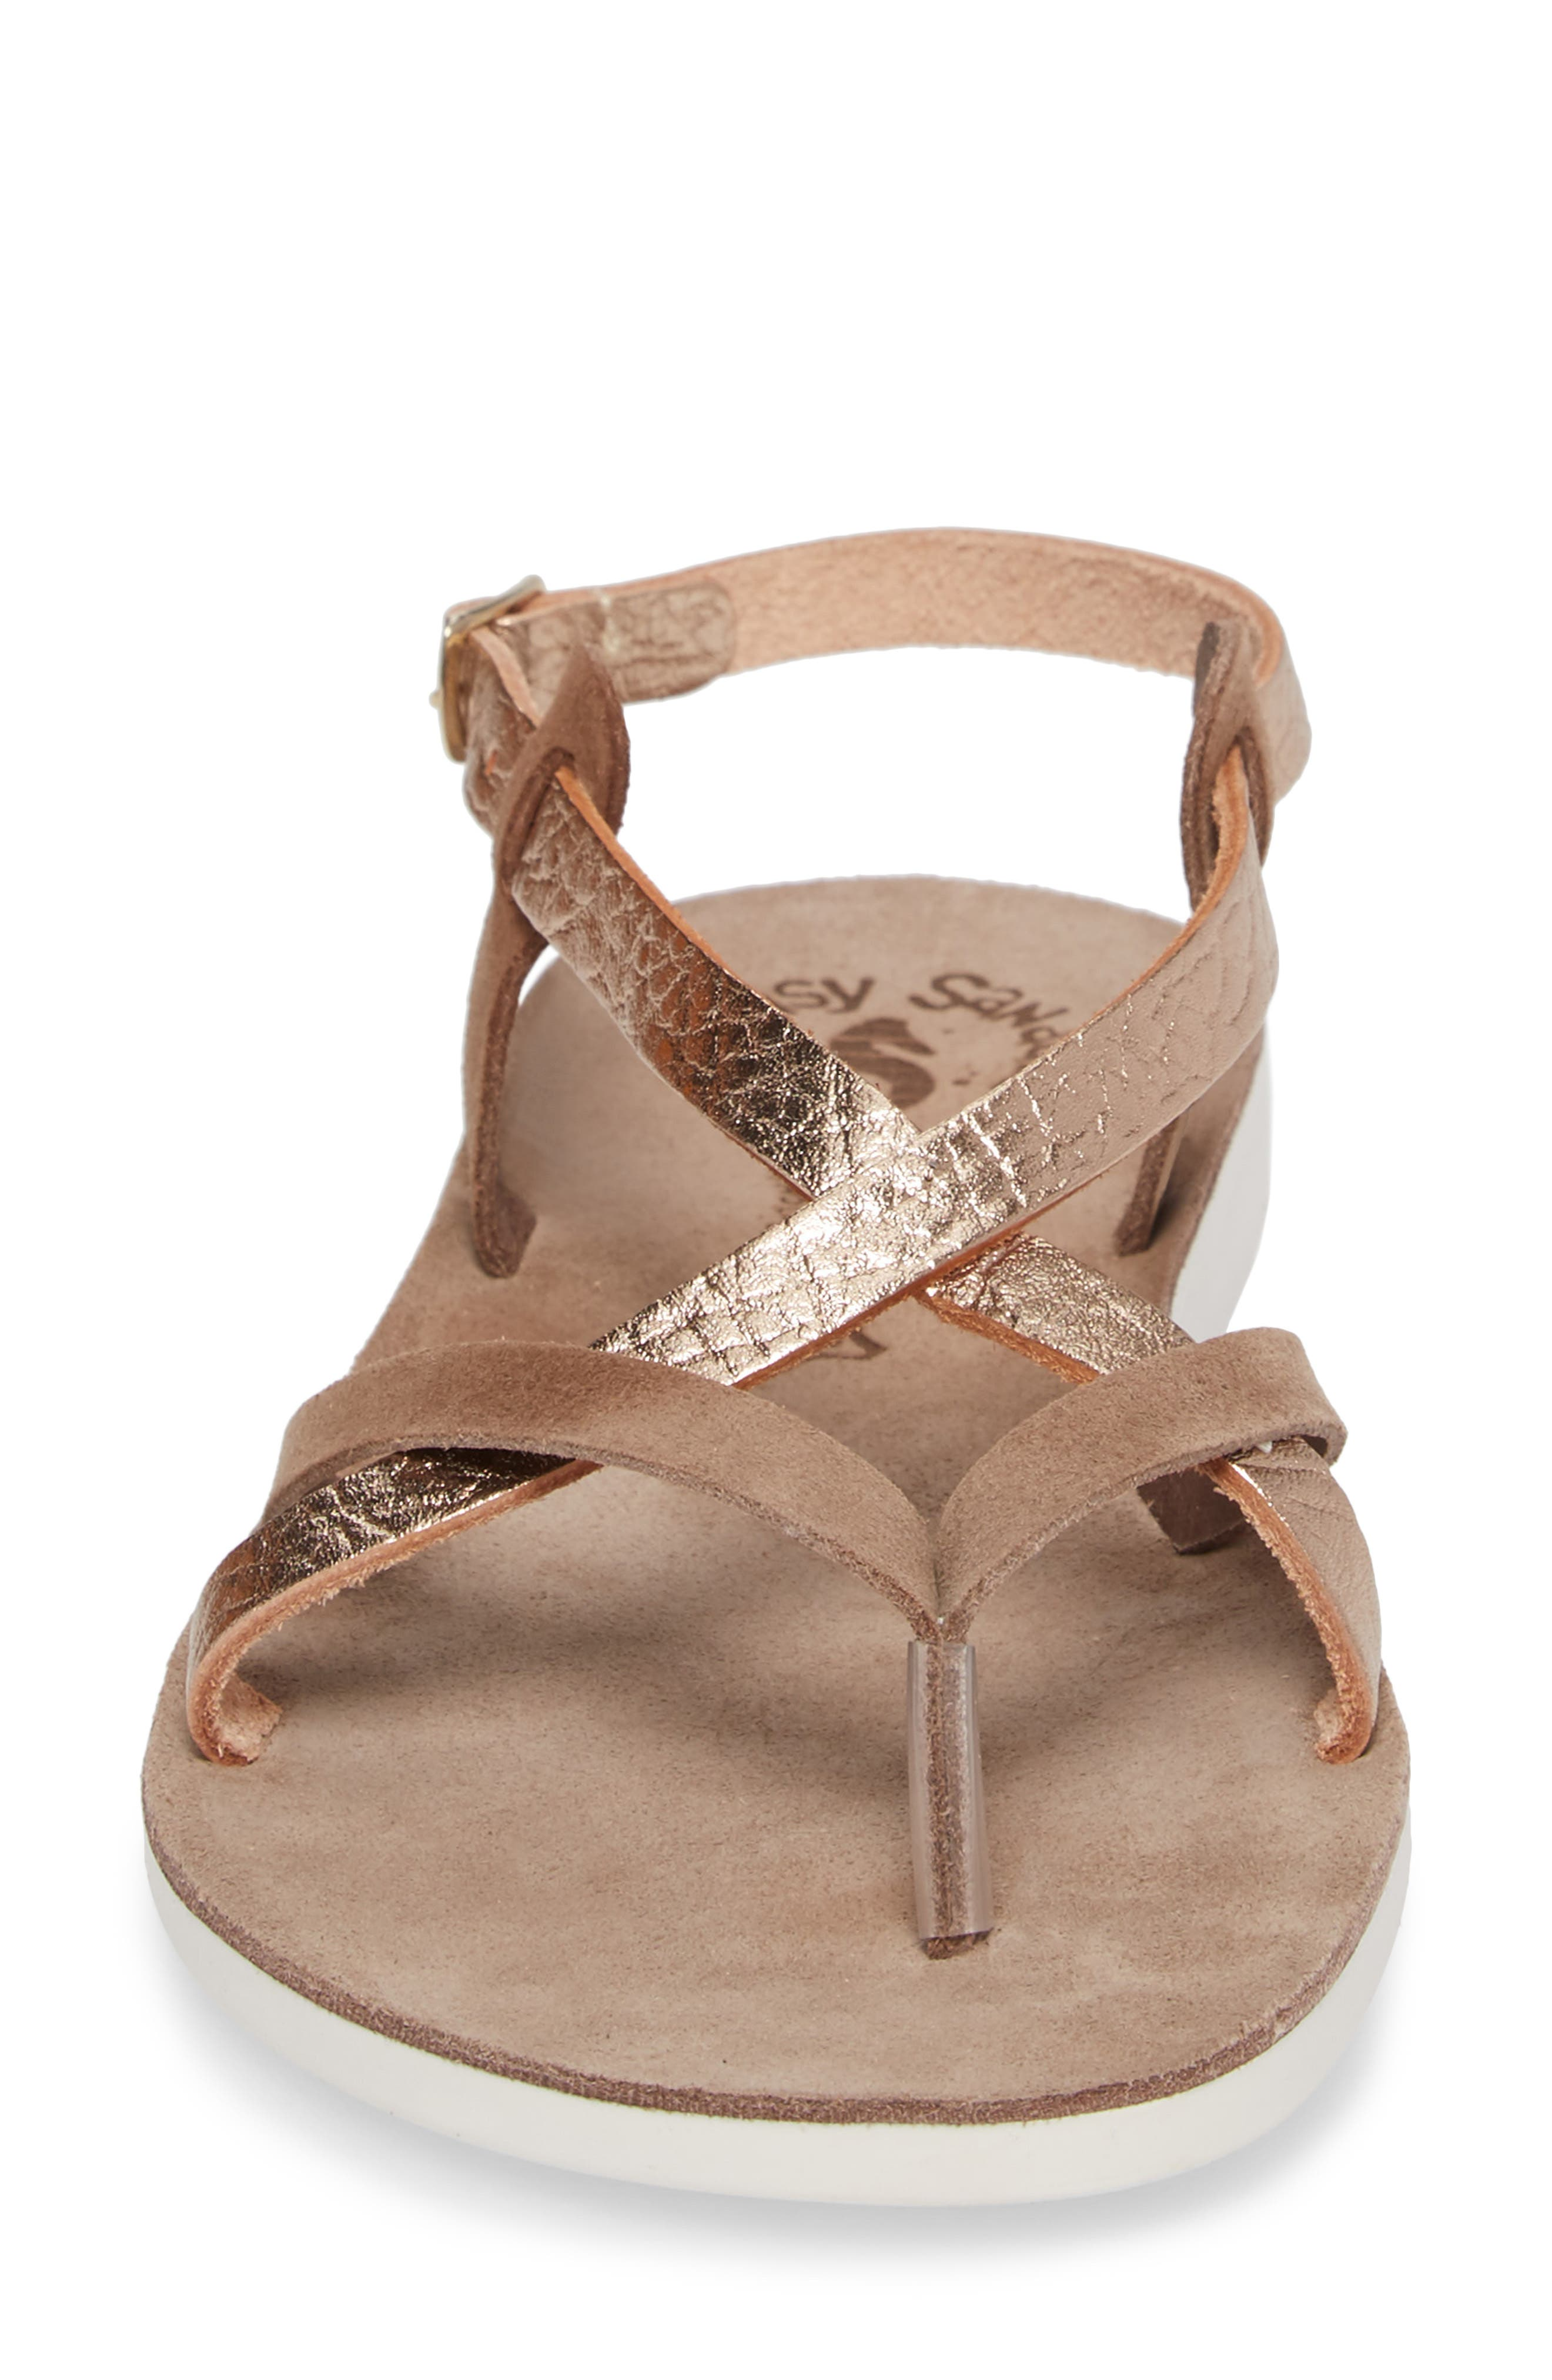 Anelia Fantasy Sandal,                             Alternate thumbnail 4, color,                             Coffee Volcano Leather